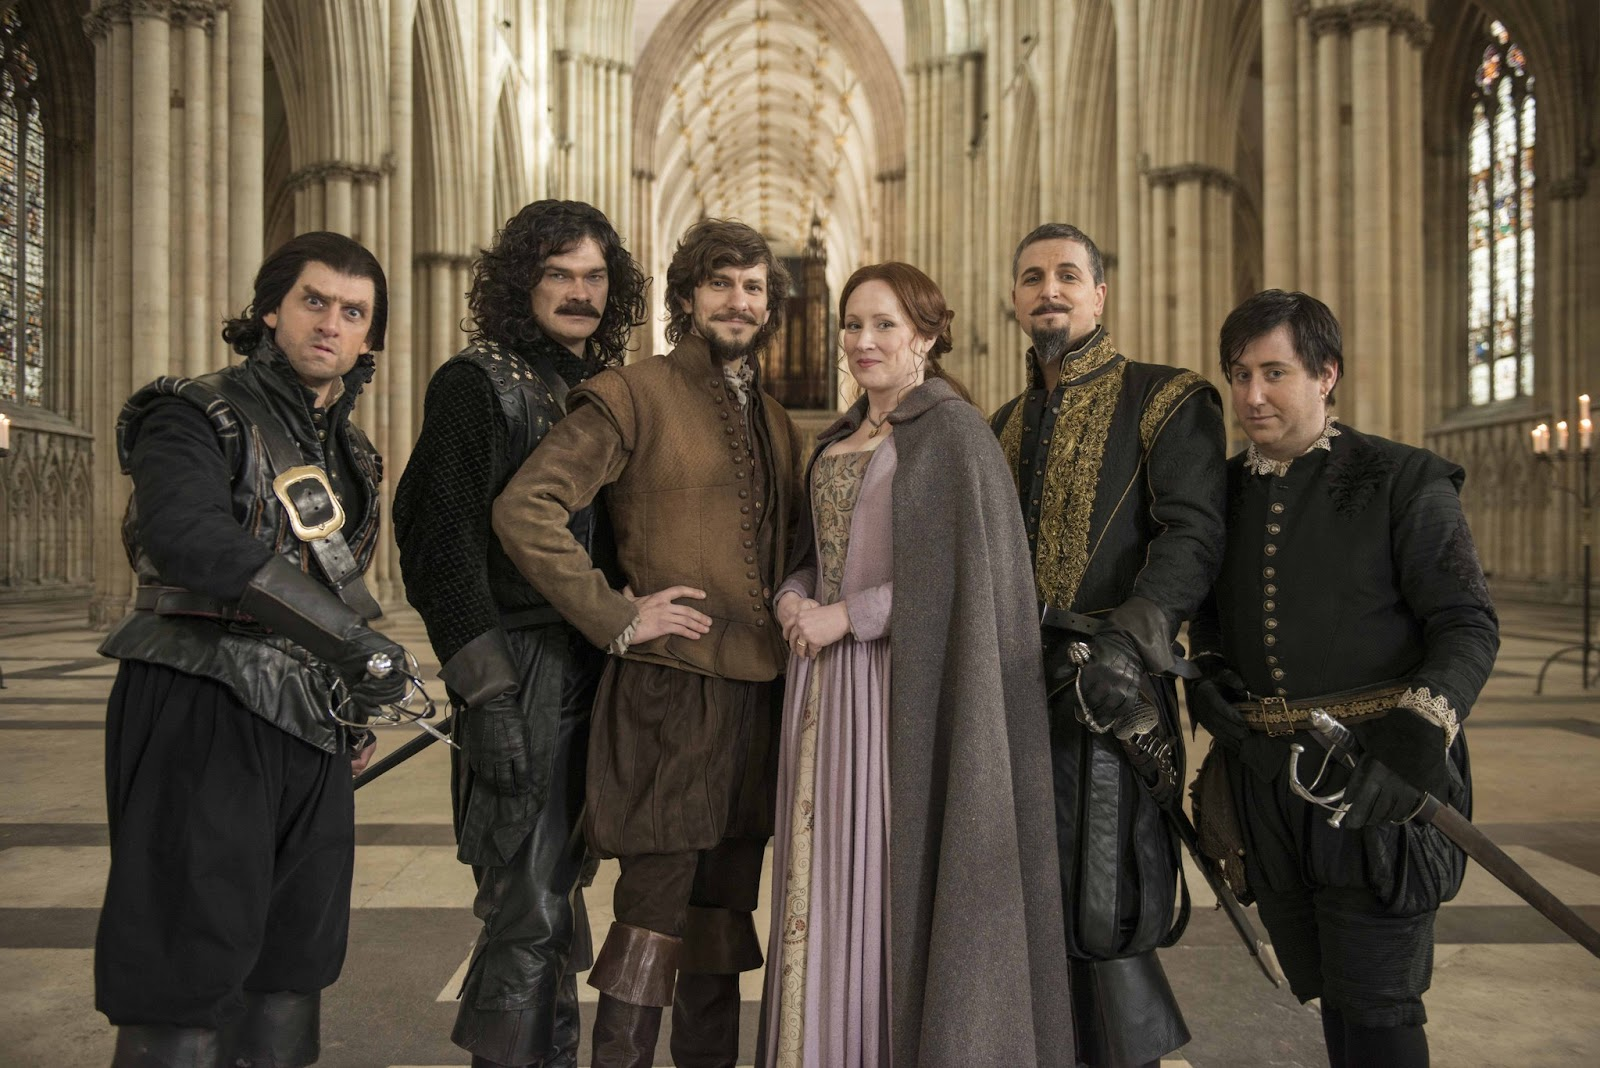 Bill The cast of BILL at York Minster (From left to right: Laurence Rickard as Lope, Simon Farnaby as Juan, Mathew Baynton as Bill, Martha Howe-Douglas as Anne, Ben Willbond as King Philip II of Spain, Jim Howick as Gabriel)